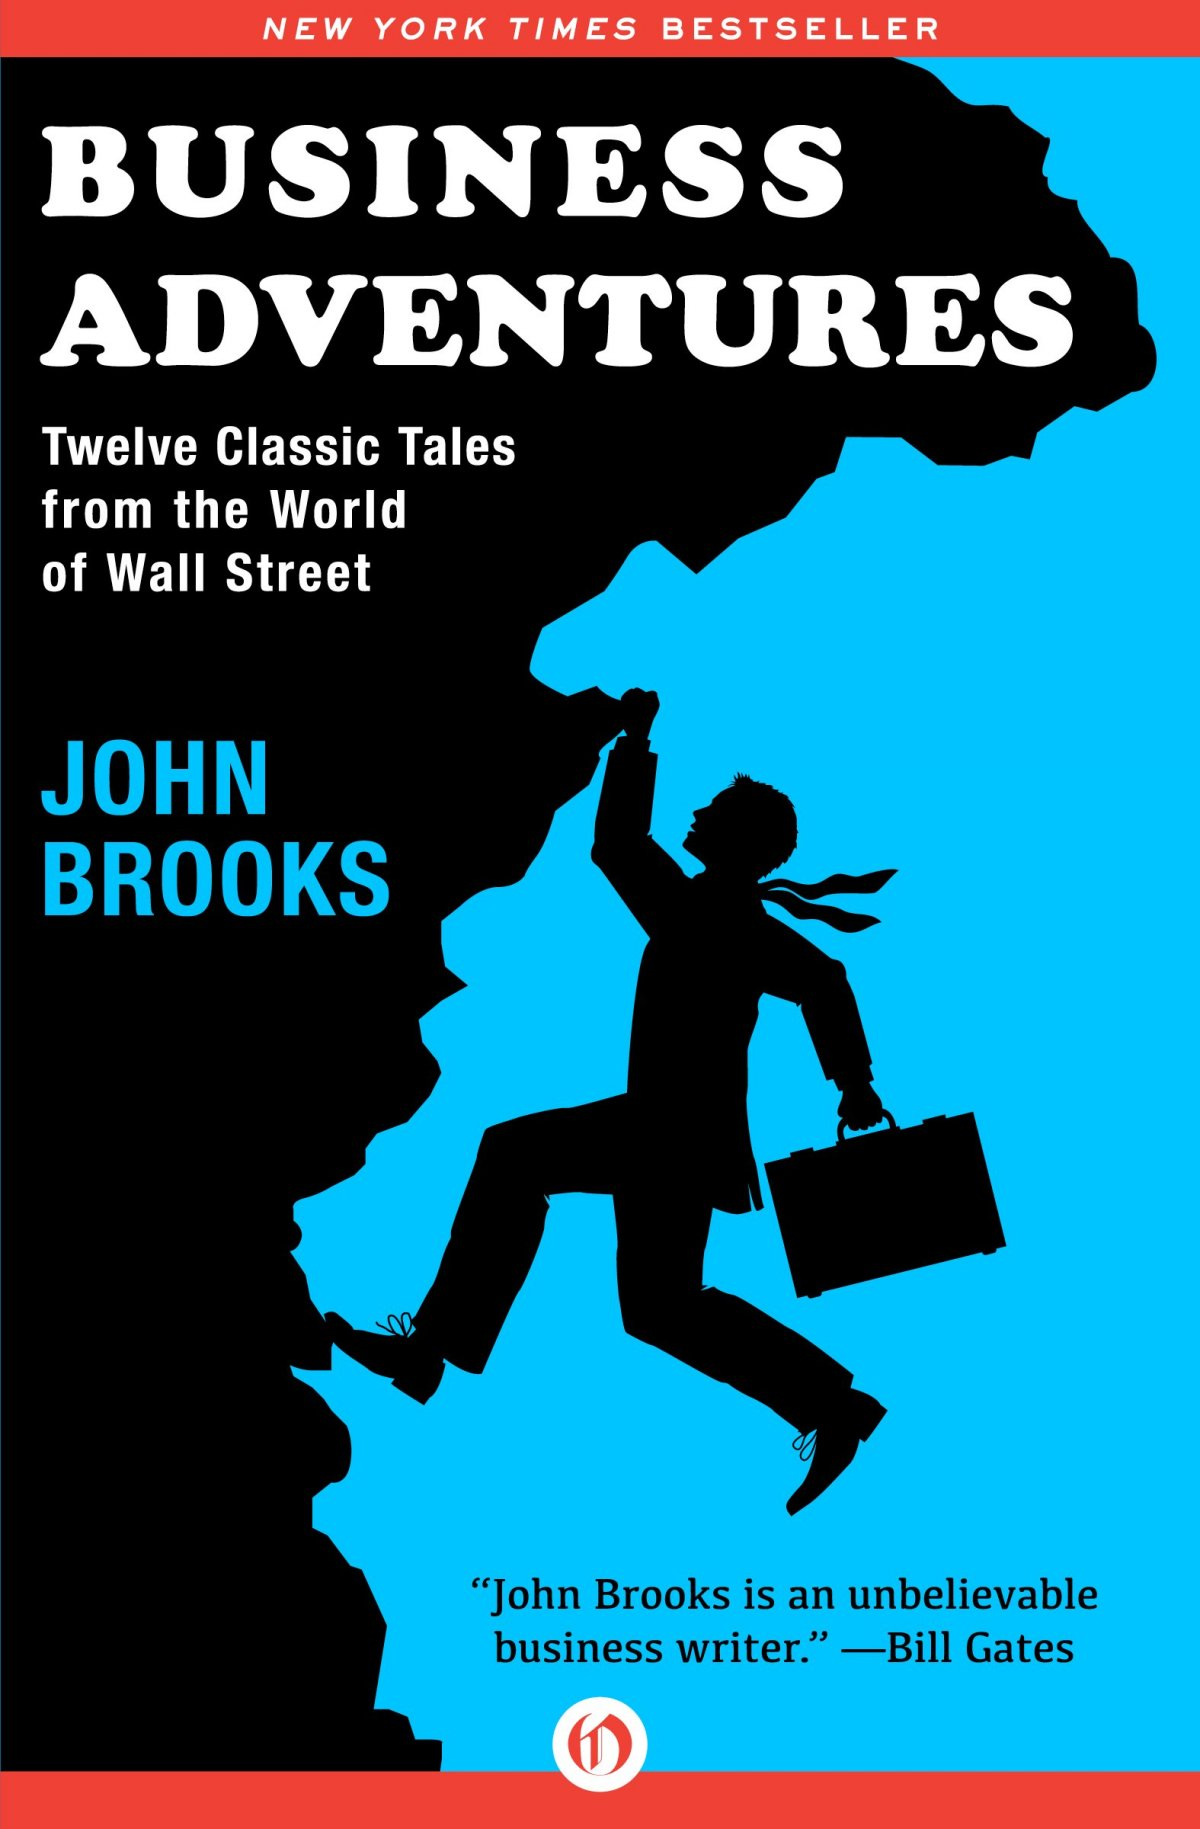 business-adventures-twelve-classic-tales-from-the-world-of-wall-street-by-john-brooks